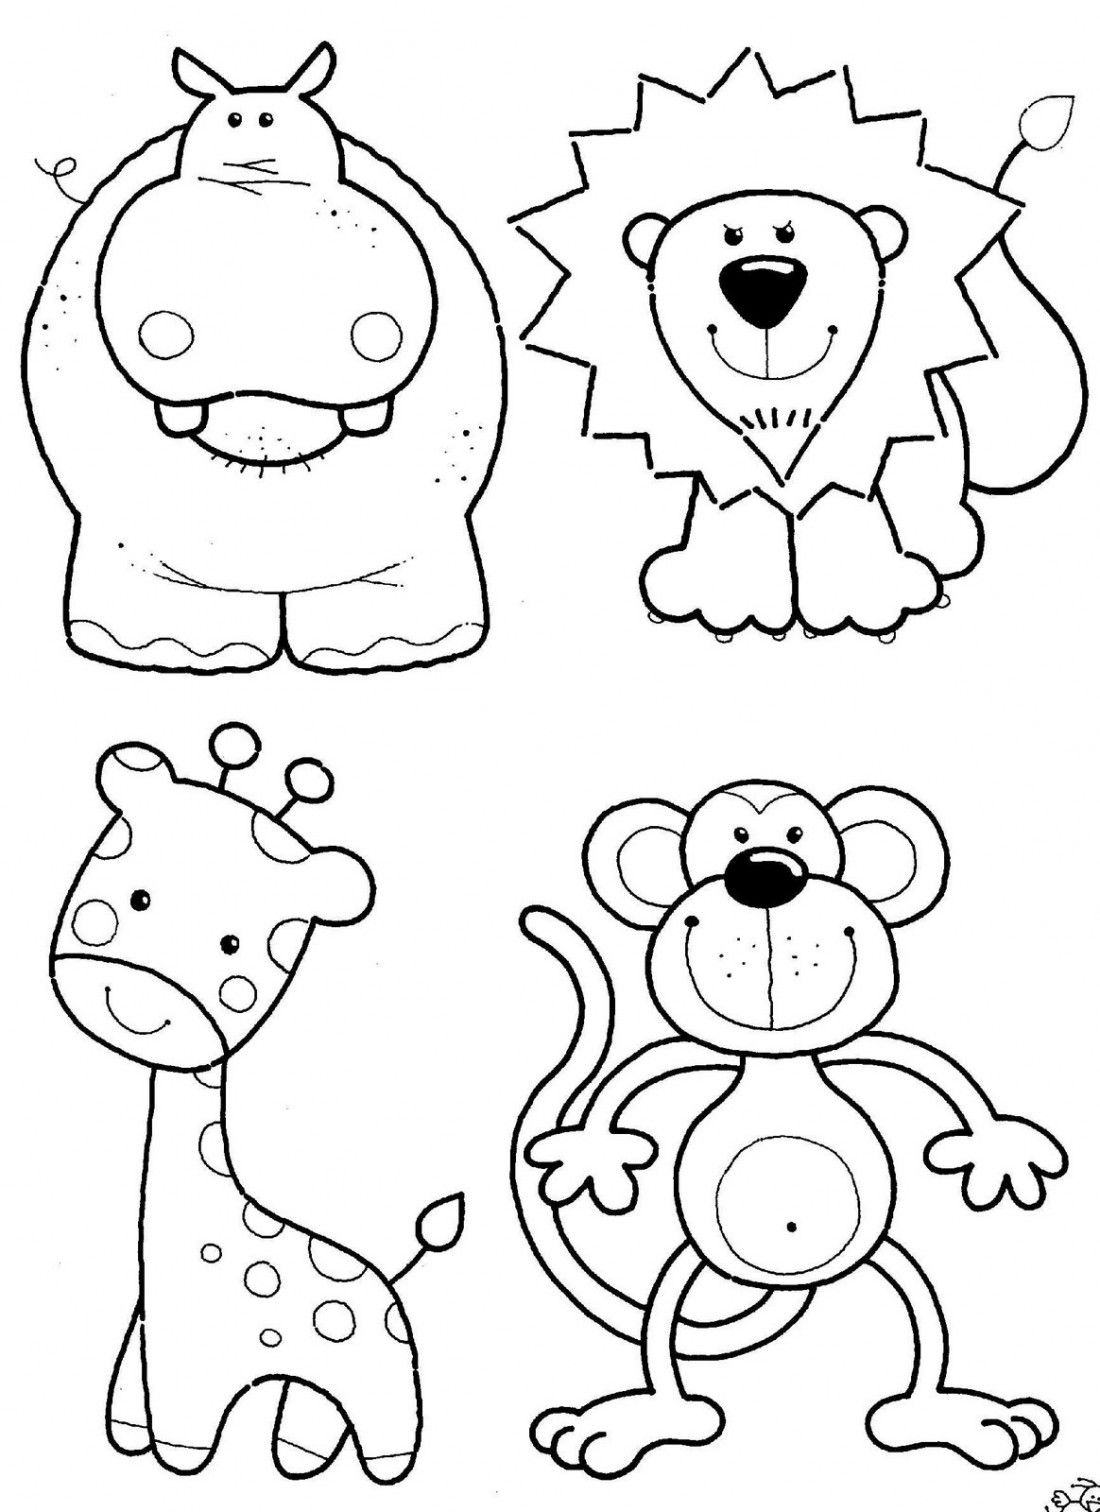 Childrens animal colouring pages - Zoo Animals Coloring Pages Animal Coloring Pages Coloring Ideas